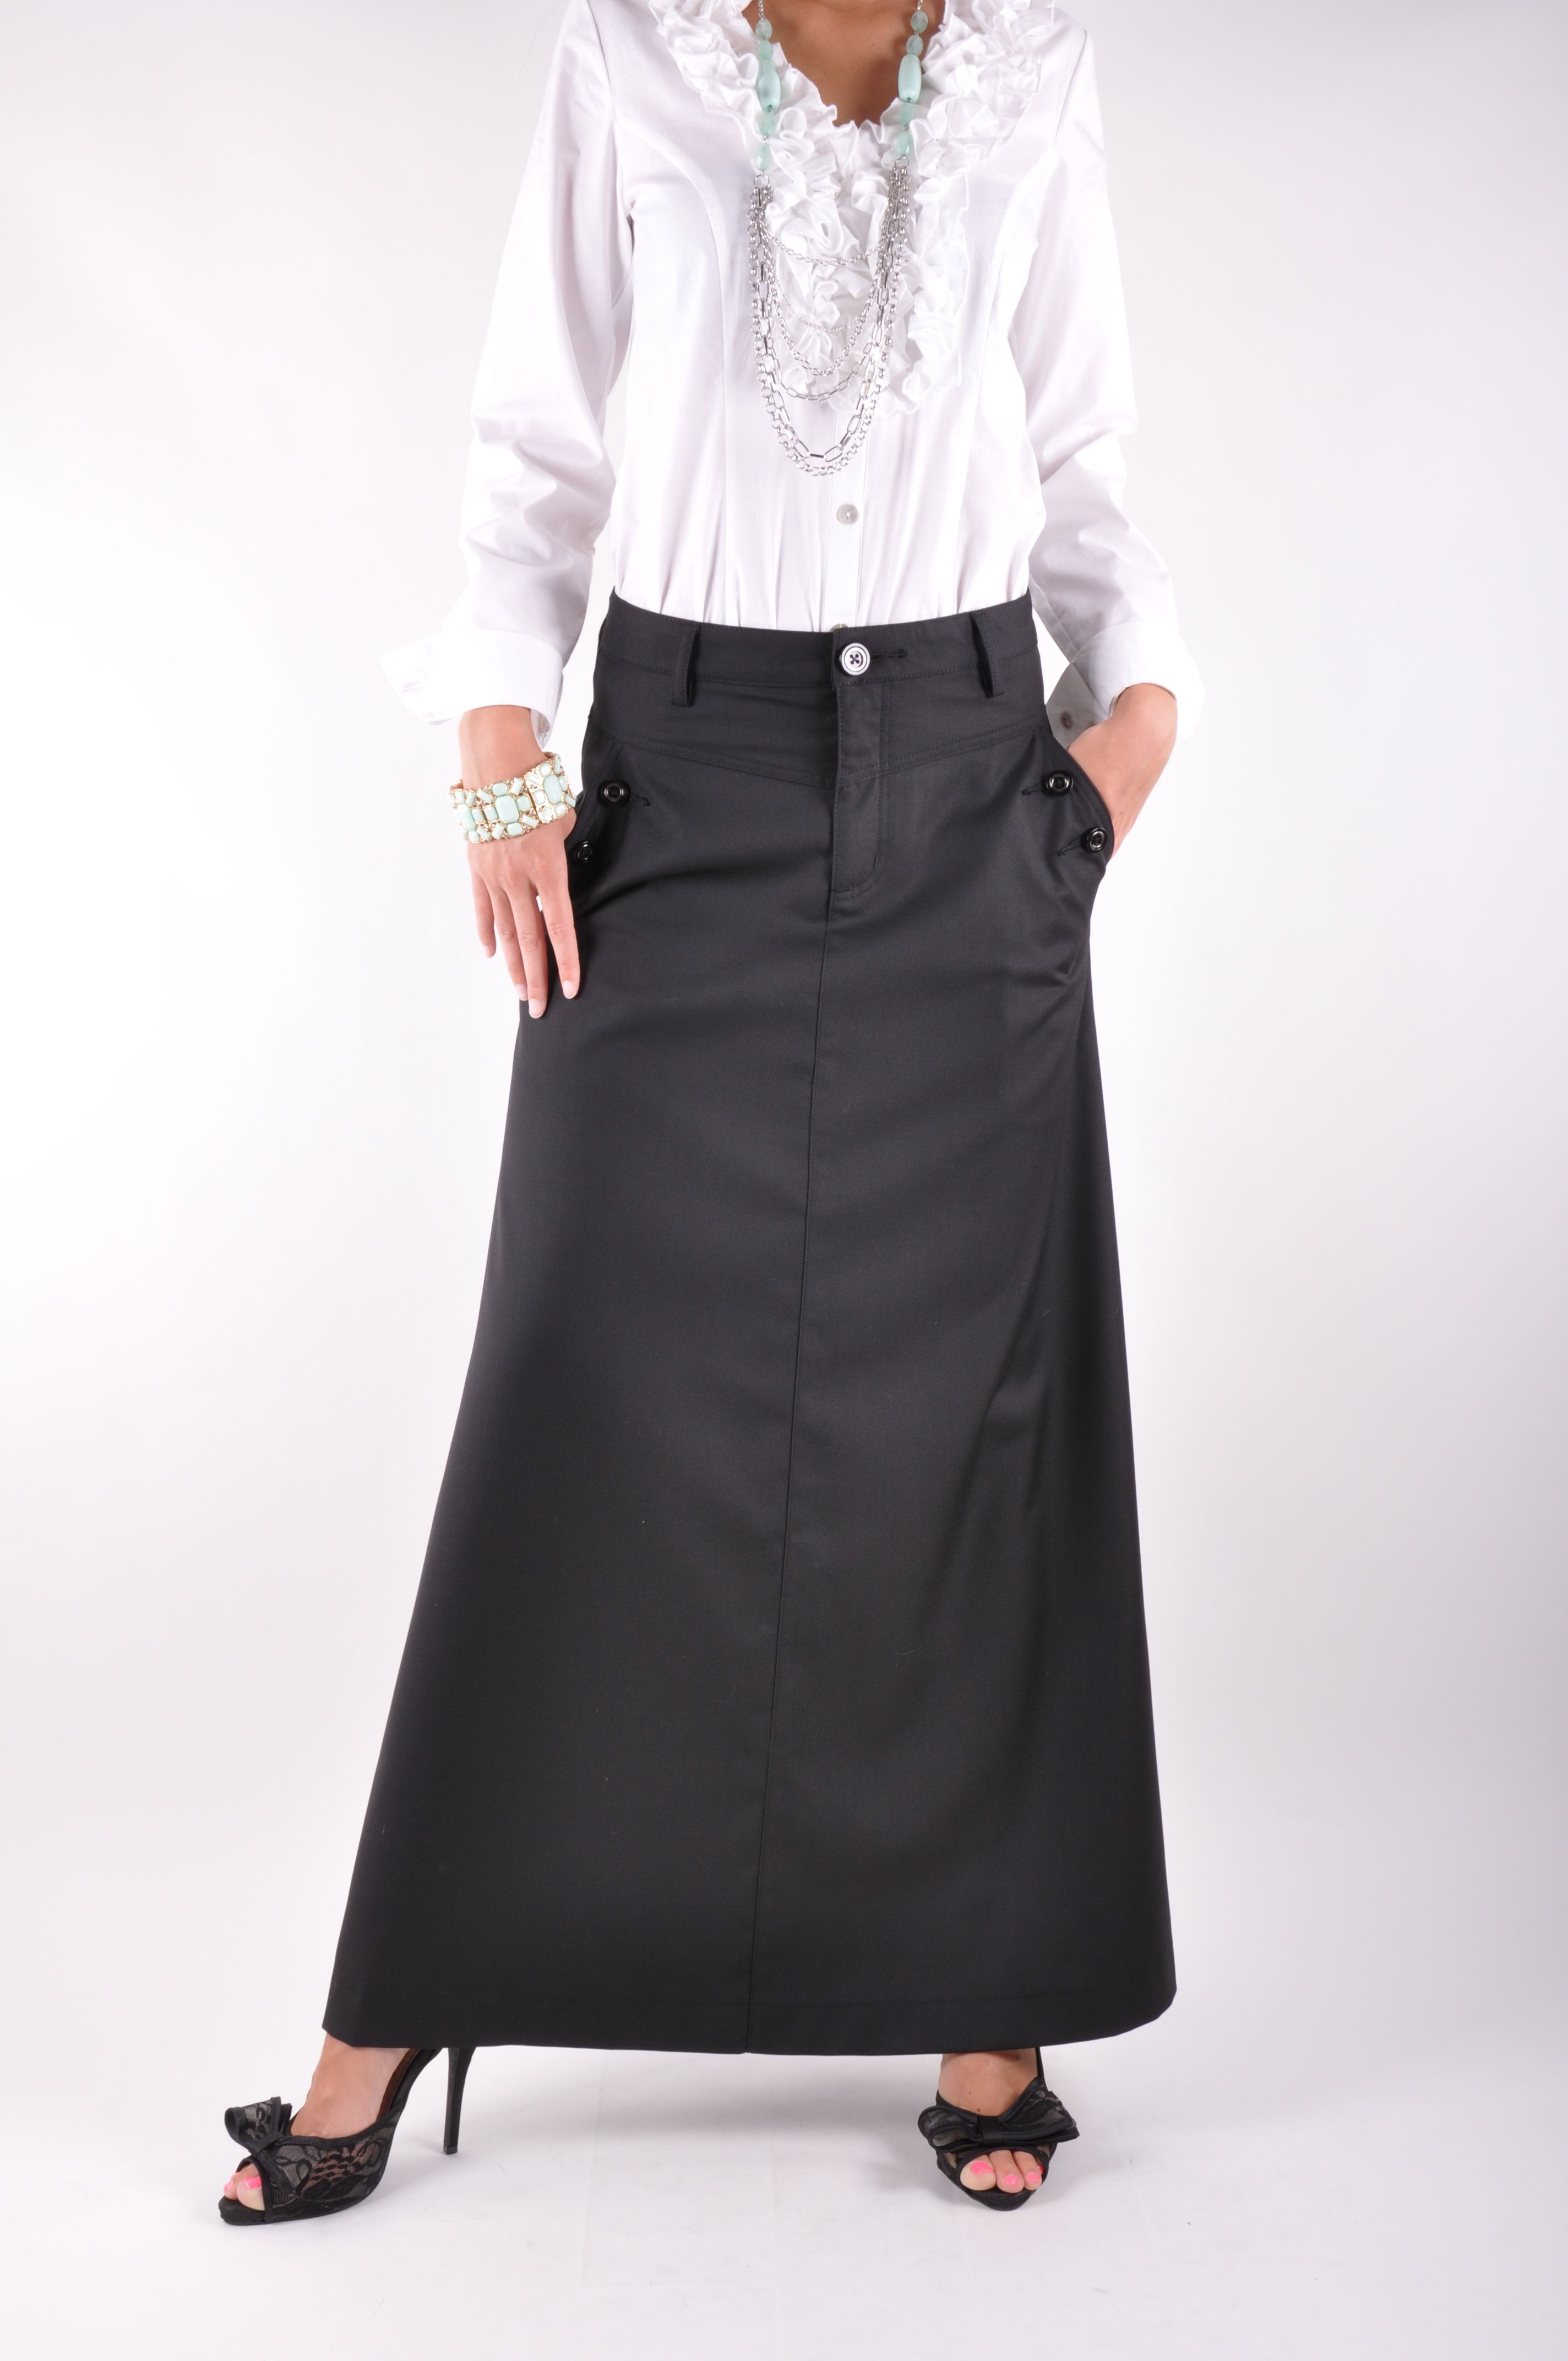 95da62e298 Just Chic Black Long Skirt | Office Skirts | Skirt fashion, Long ...